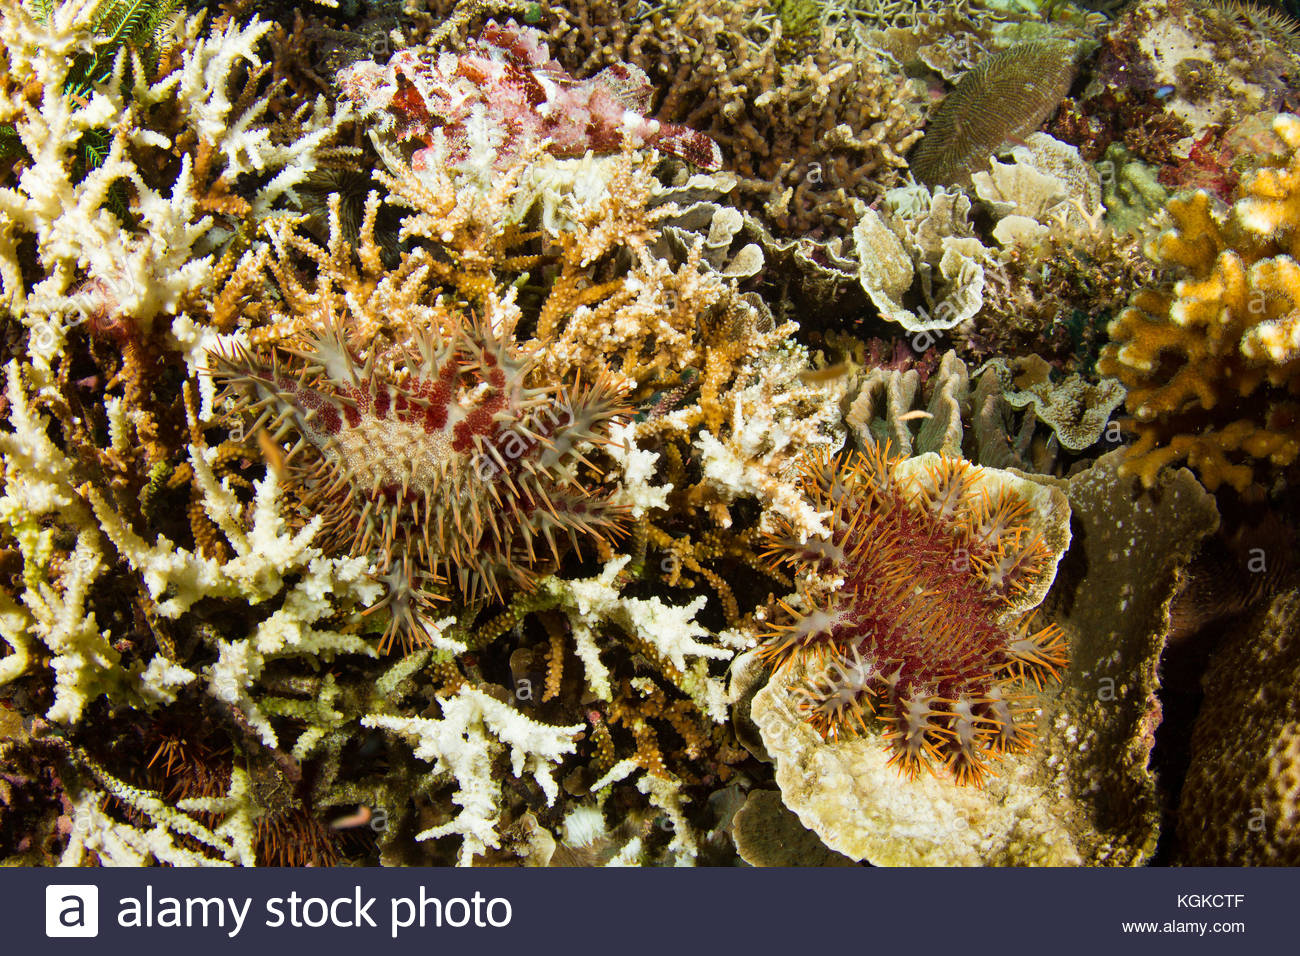 Crown of thorn starfish, Acanthaster planci, emerge from underneath the reef at night, ready to start feeding on - Stock Image